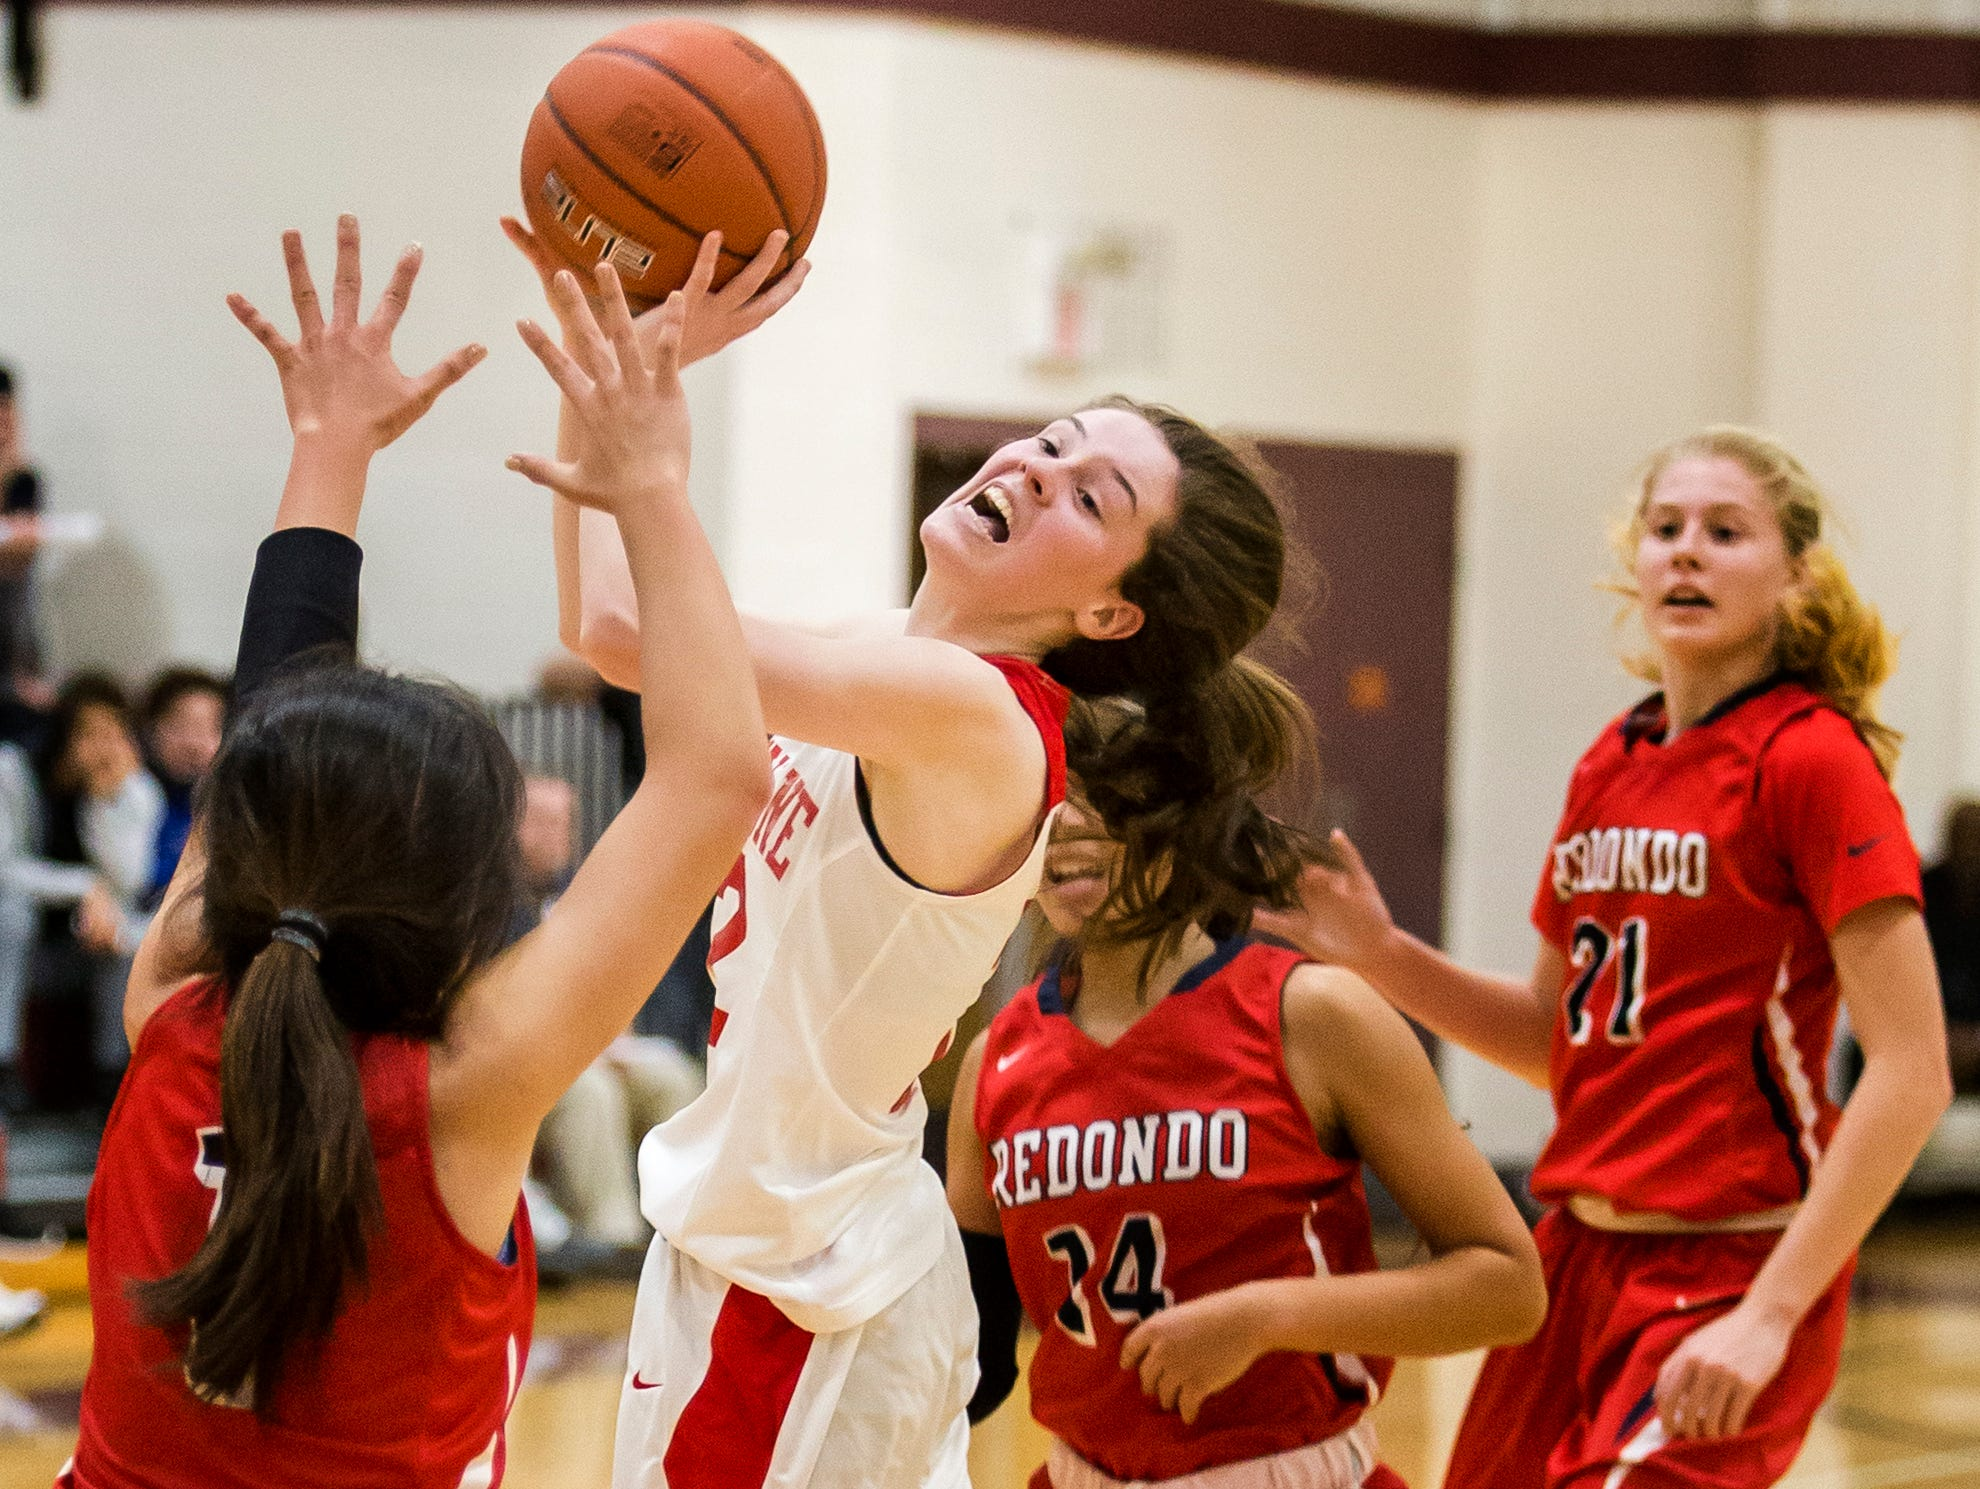 Ursuline's Magie Connolly puts up a shot in the second half of Ursuline's 39-26 win over Redondo Union High School in the Diamond State Classic at St. Elizabeth High School in Wilmington on Tuesday night.